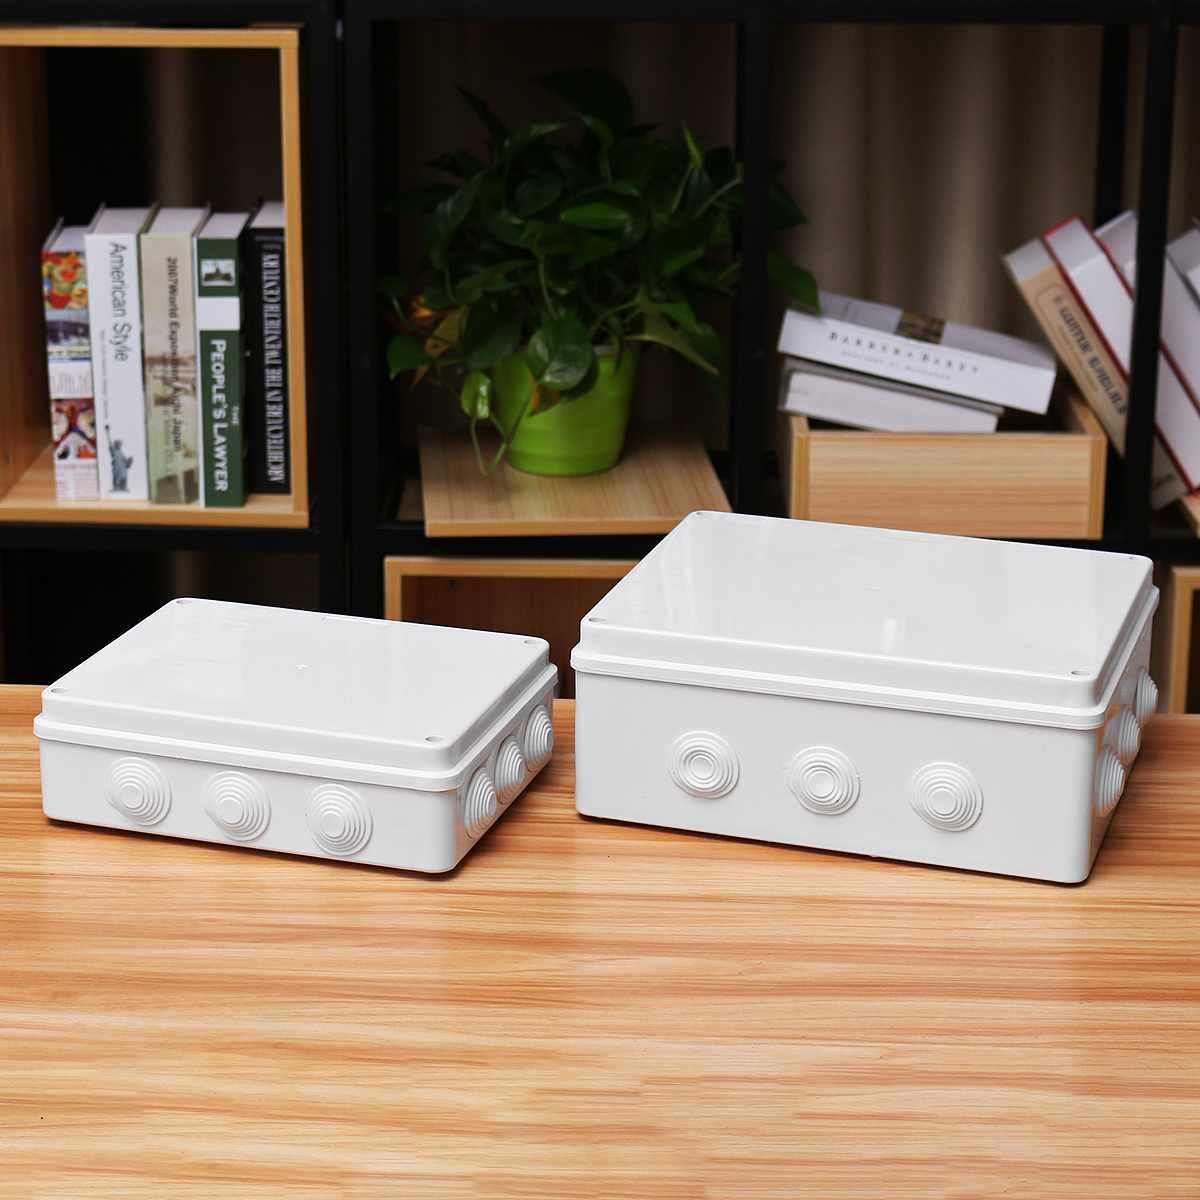 Waterproof Junction Box ABS Plastic IP65 DIY Outdoor Electrical Connection Box Cable Branch Box 300X250X120mm